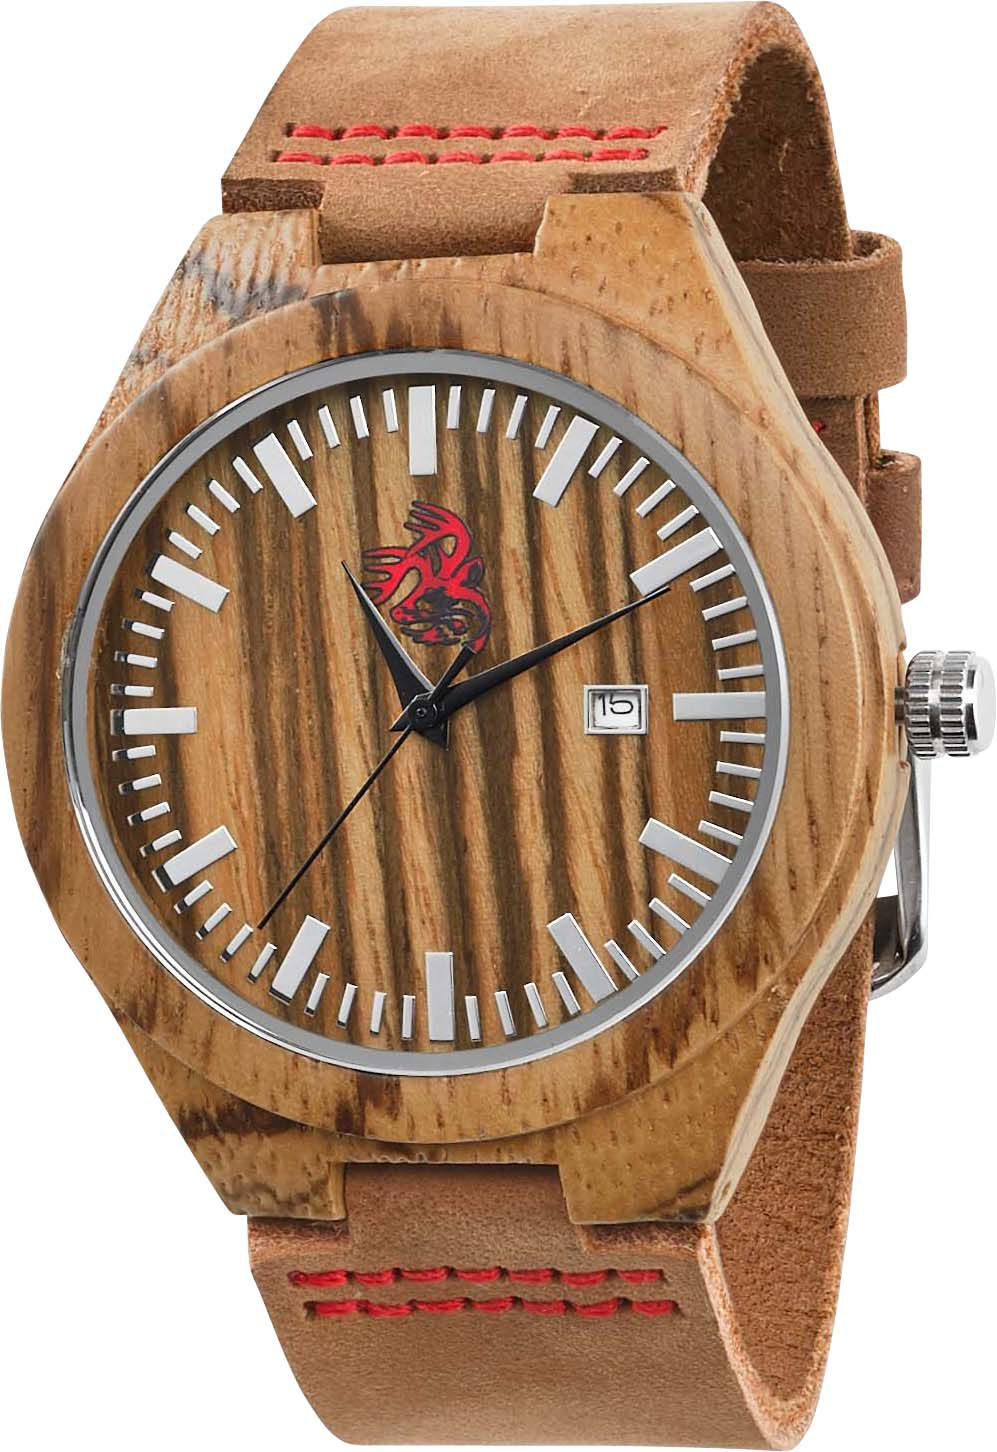 foodwear whiskey watches original review pin fabulous barrel grain